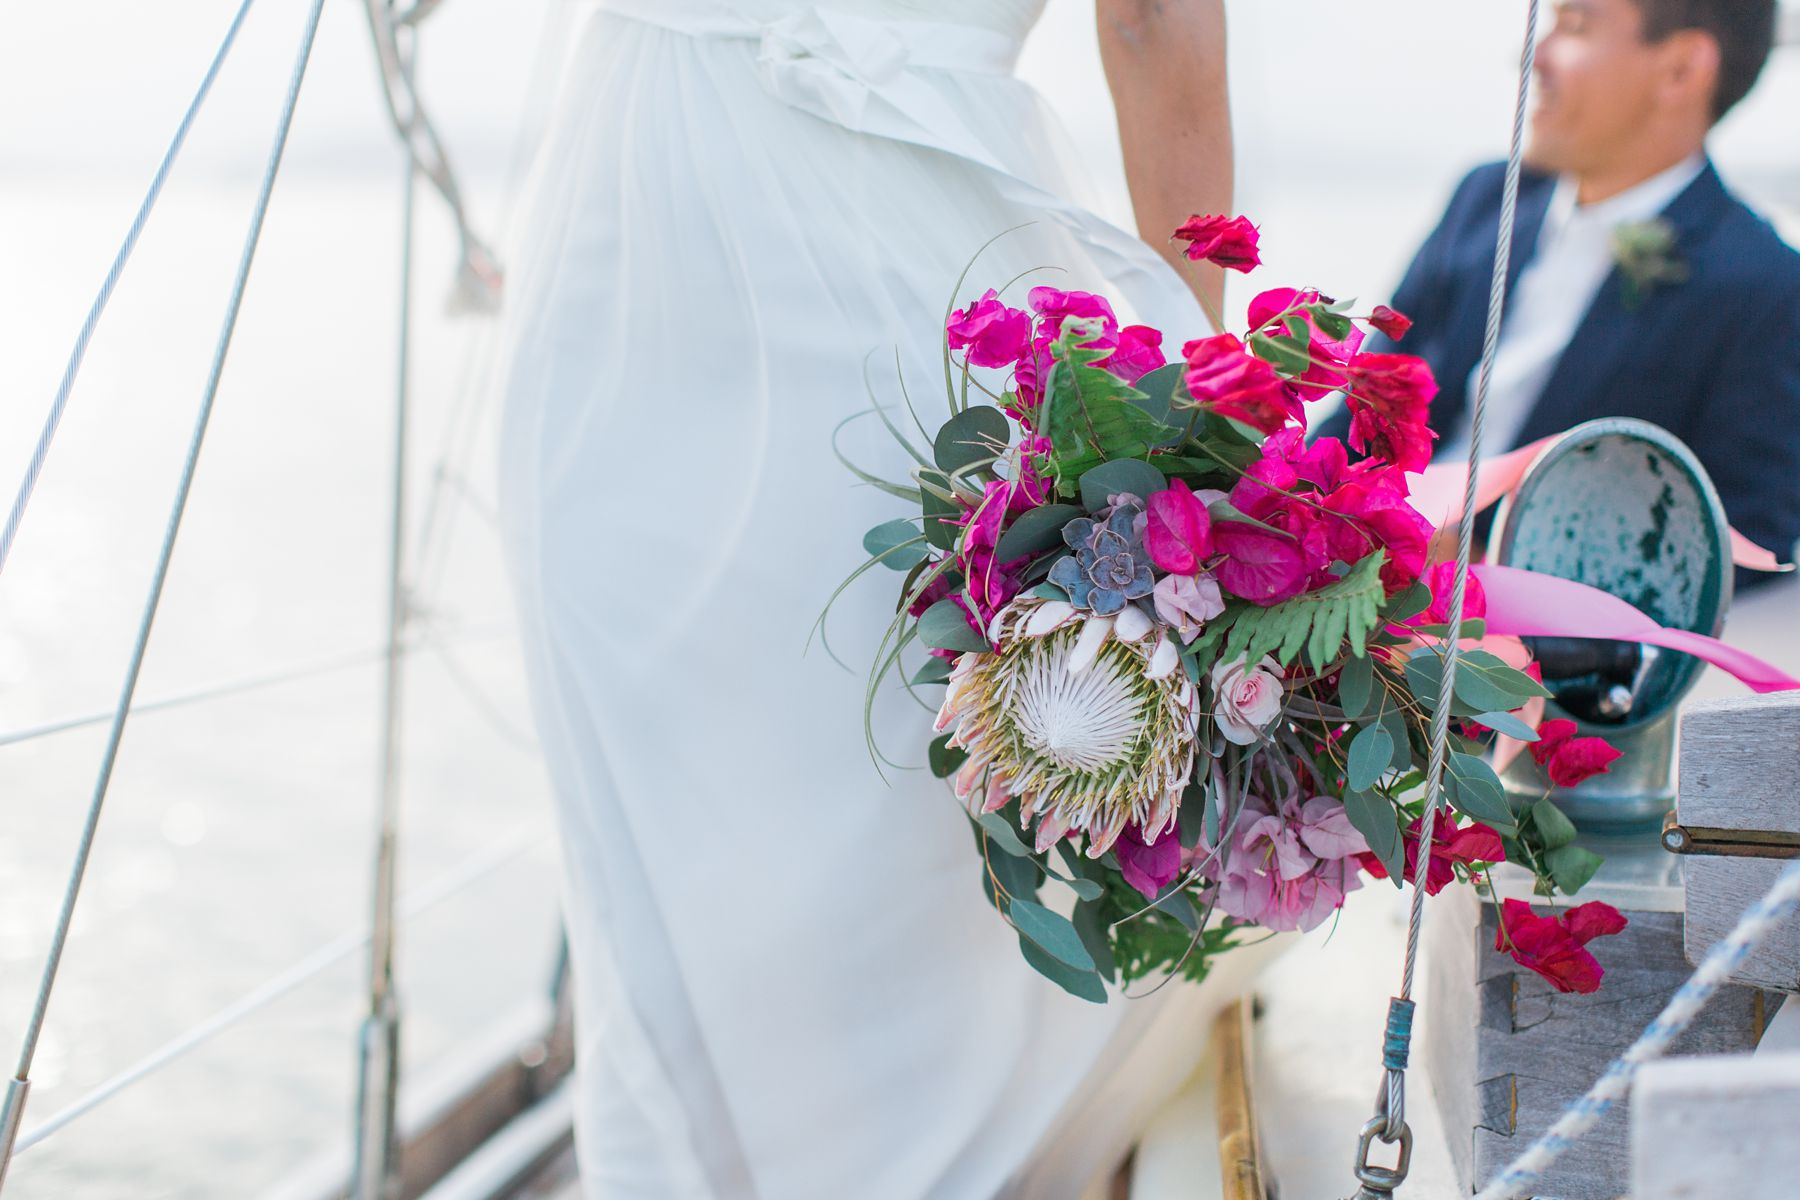 DESTINATION-WEDDING-SAIL-BOAT-ELOPEMENT-VIRGIN-ISLANDS-ST-JOHN-SAVANAH-LOFTUS_0002.jpg